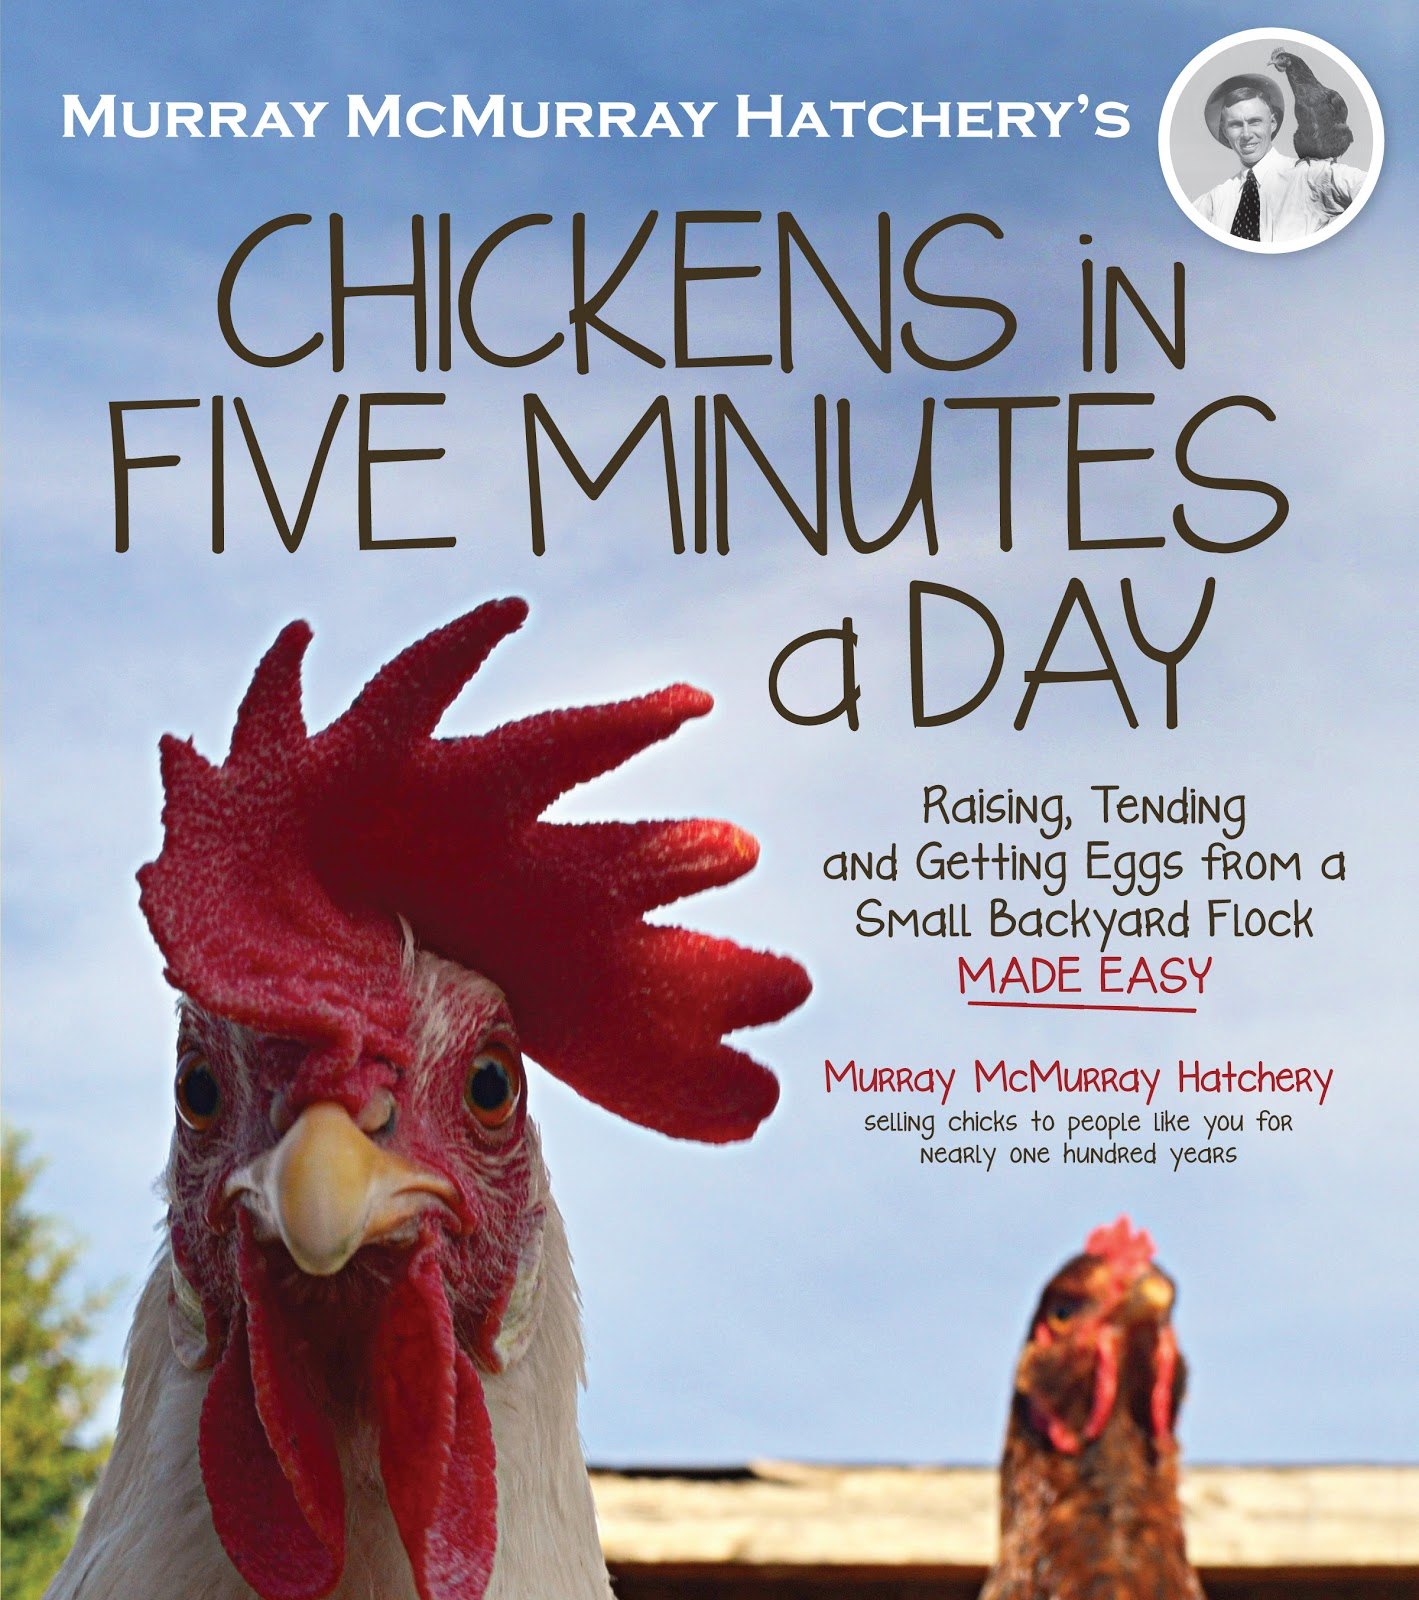 Pam S Backyard Chickens Book Review Chickens In Five Minutes A Day